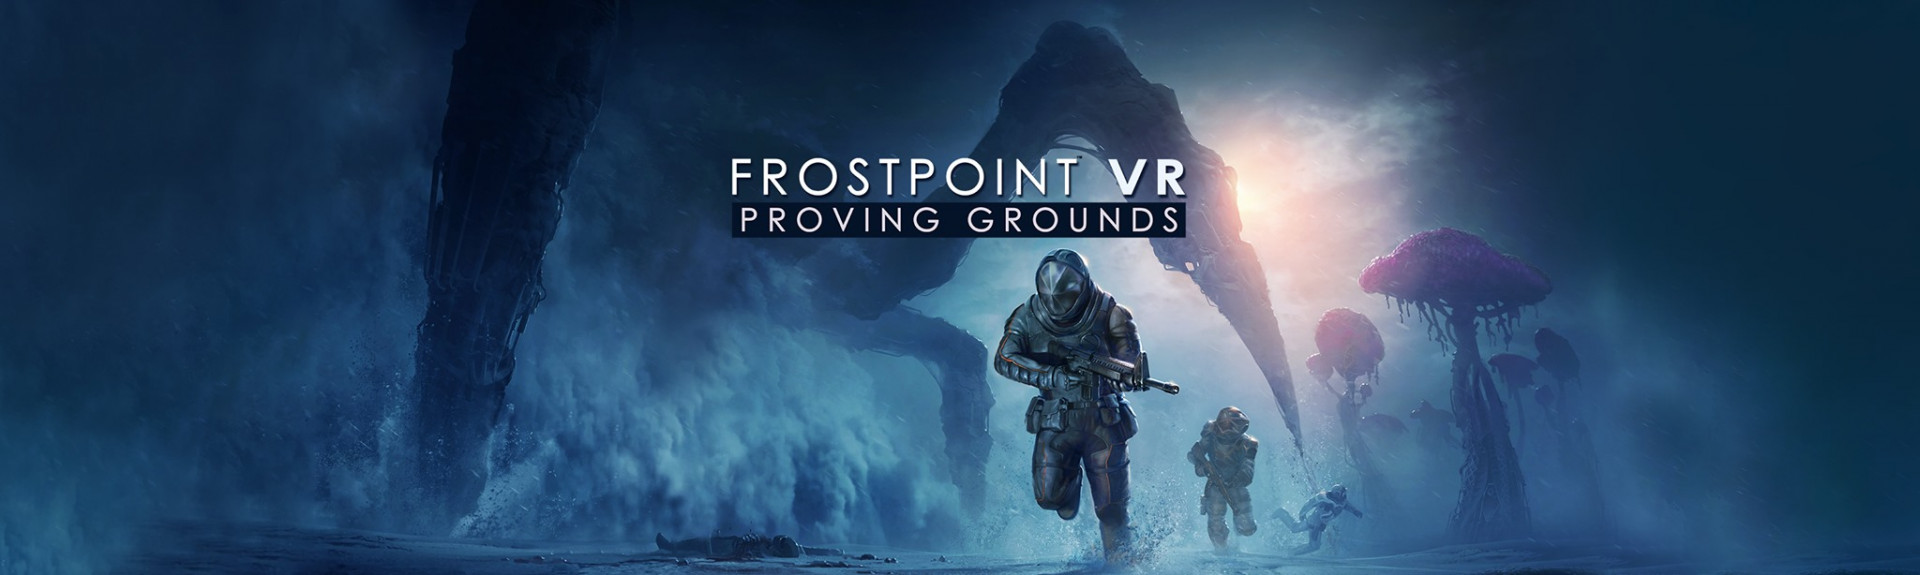 Frostpoint VR: Proving Grounds - ANÁLISIS